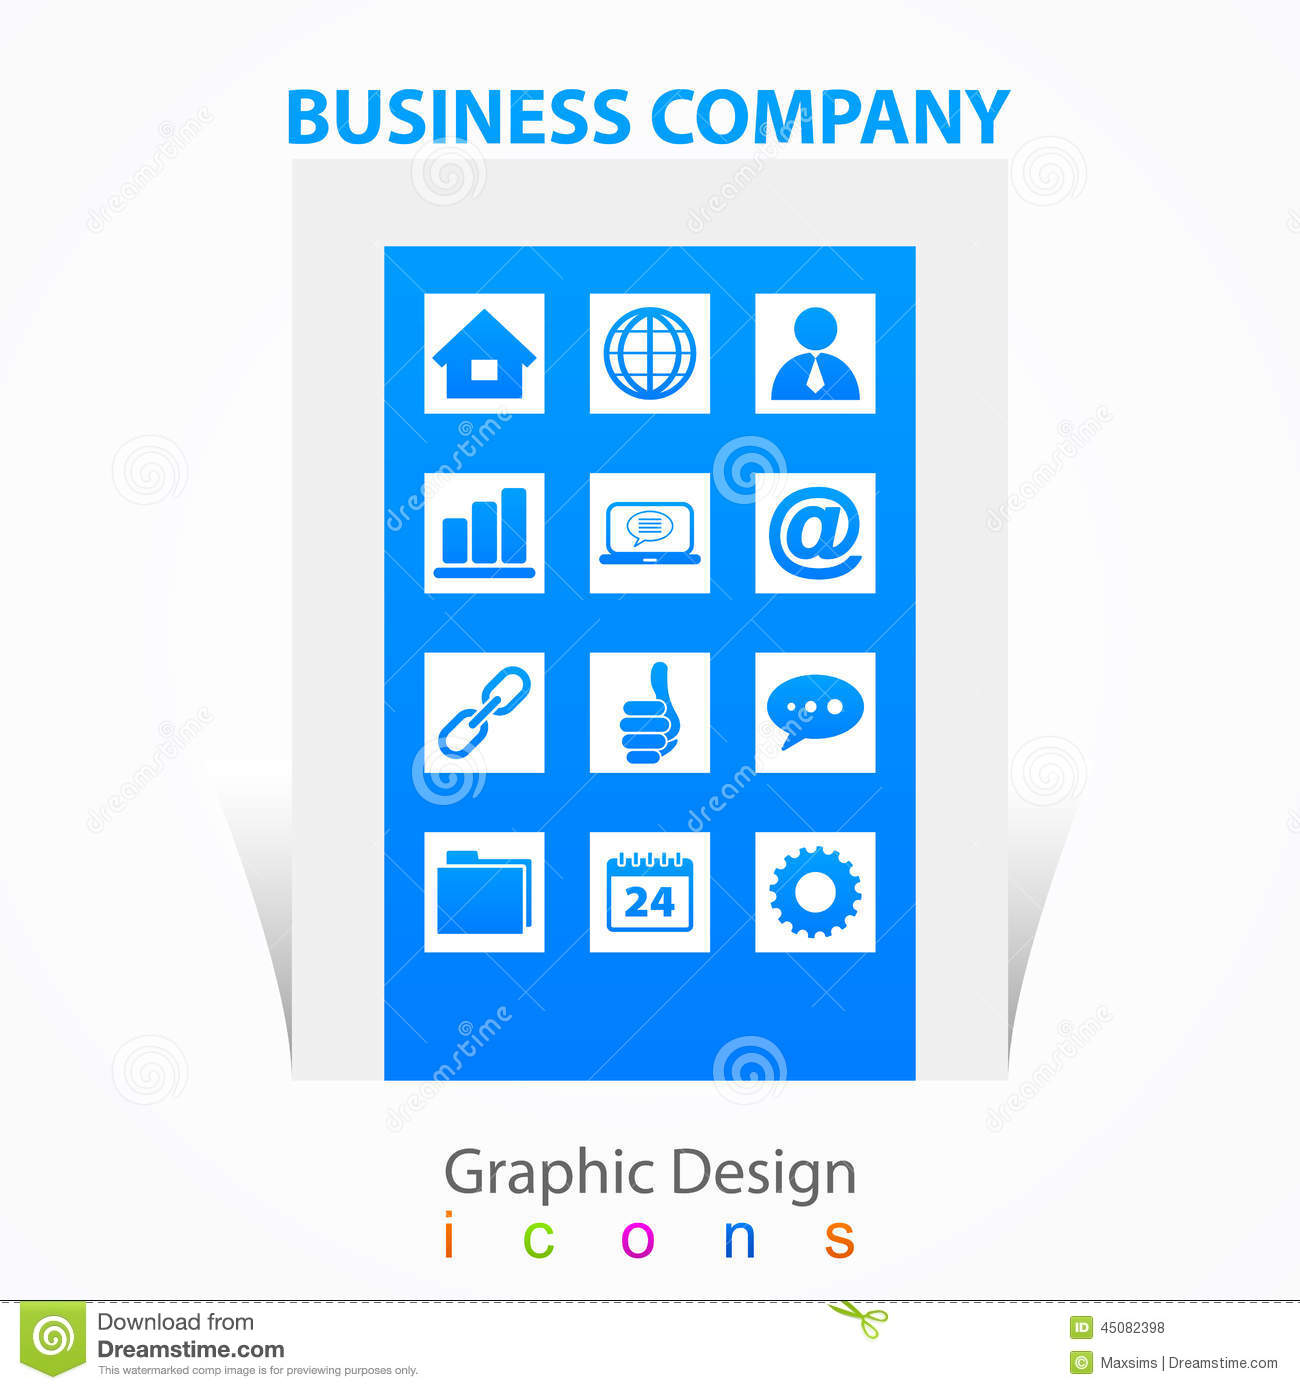 graphic design and business